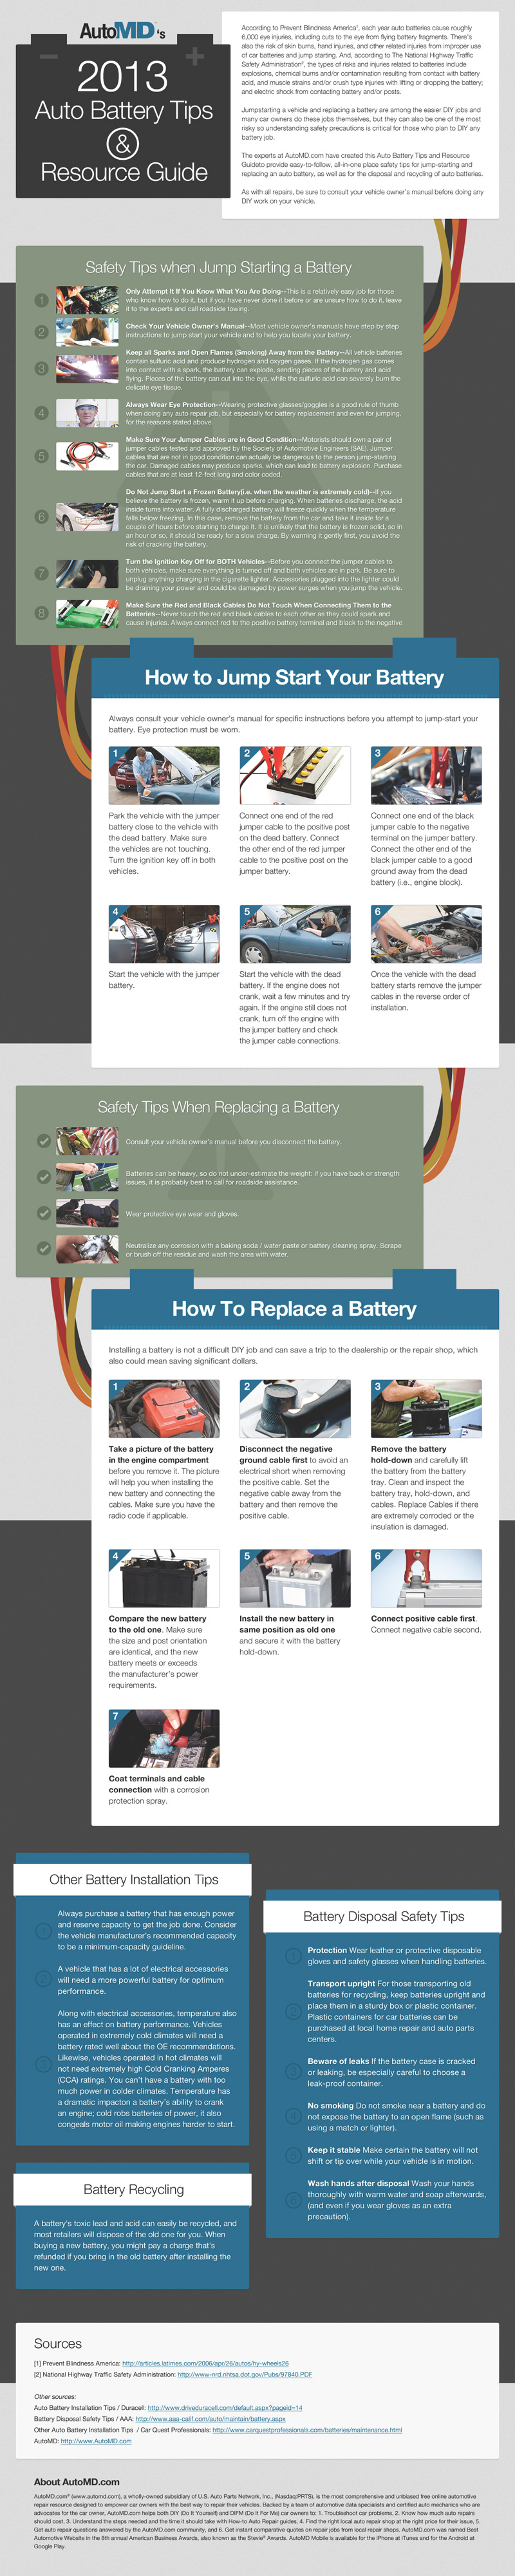 AutoMD's 2013 Auto Battery Tips and Resource Guide